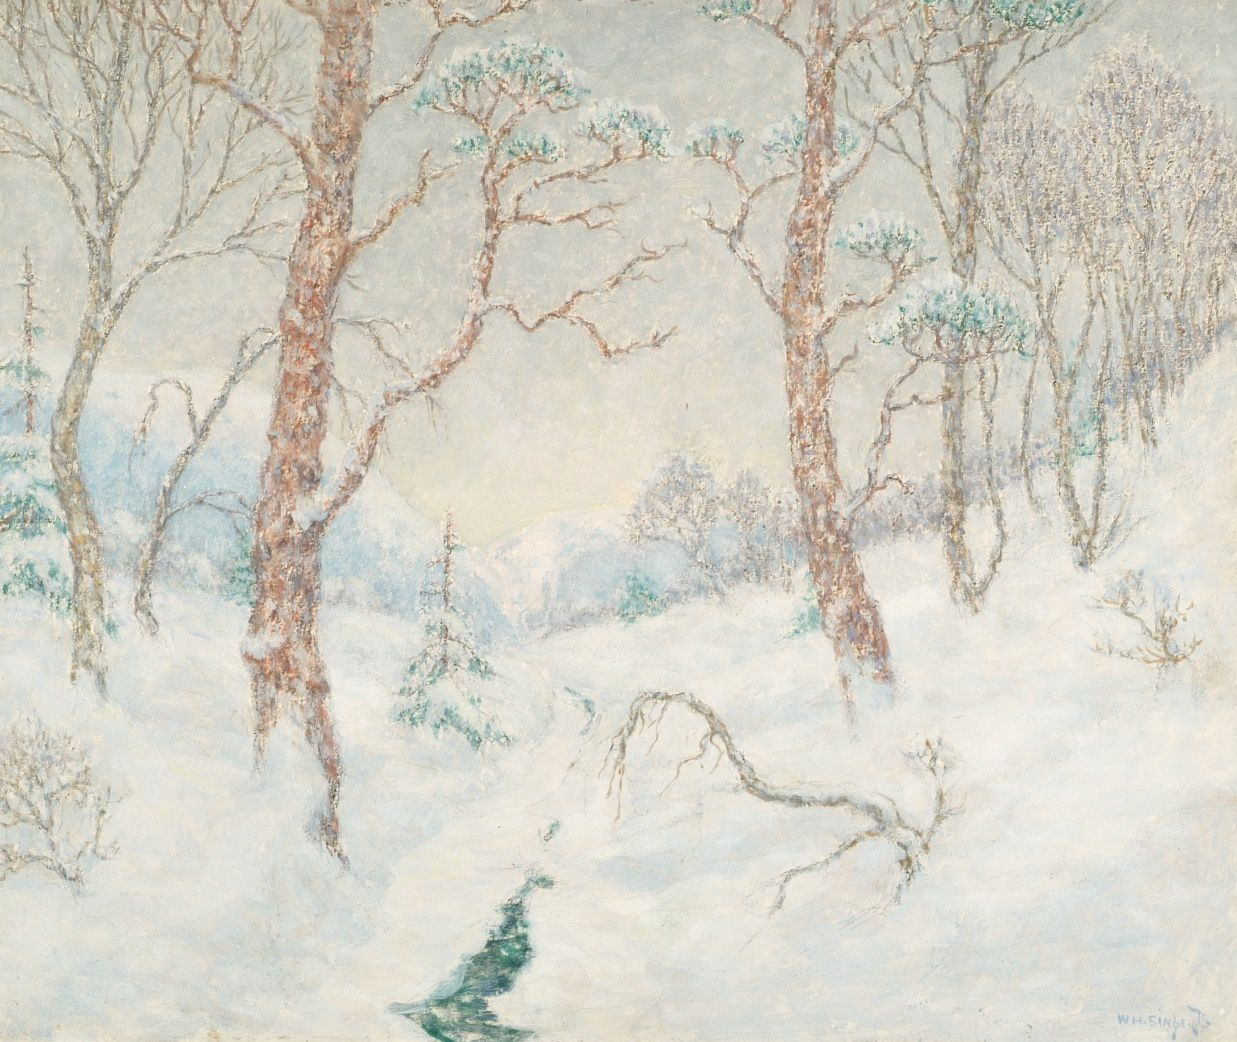 W.H. Singer jr. Bergstroom in de winter, 1923